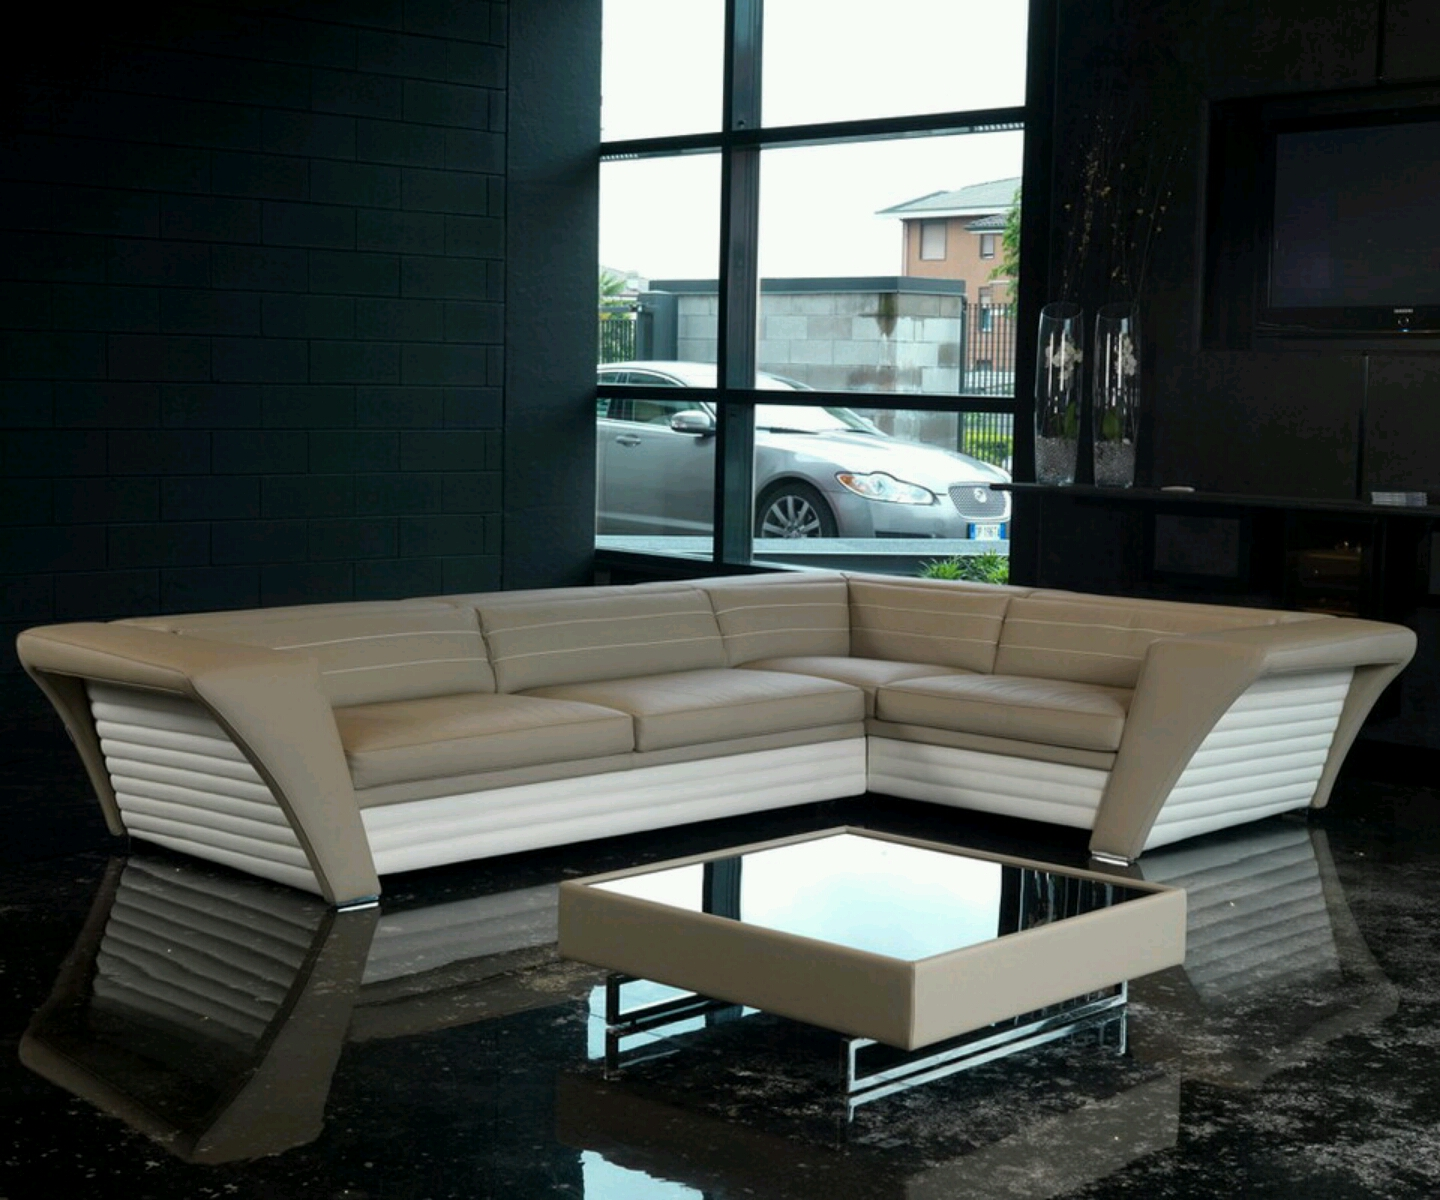 Modern cabinet design modern sofa new designs for Chair new design